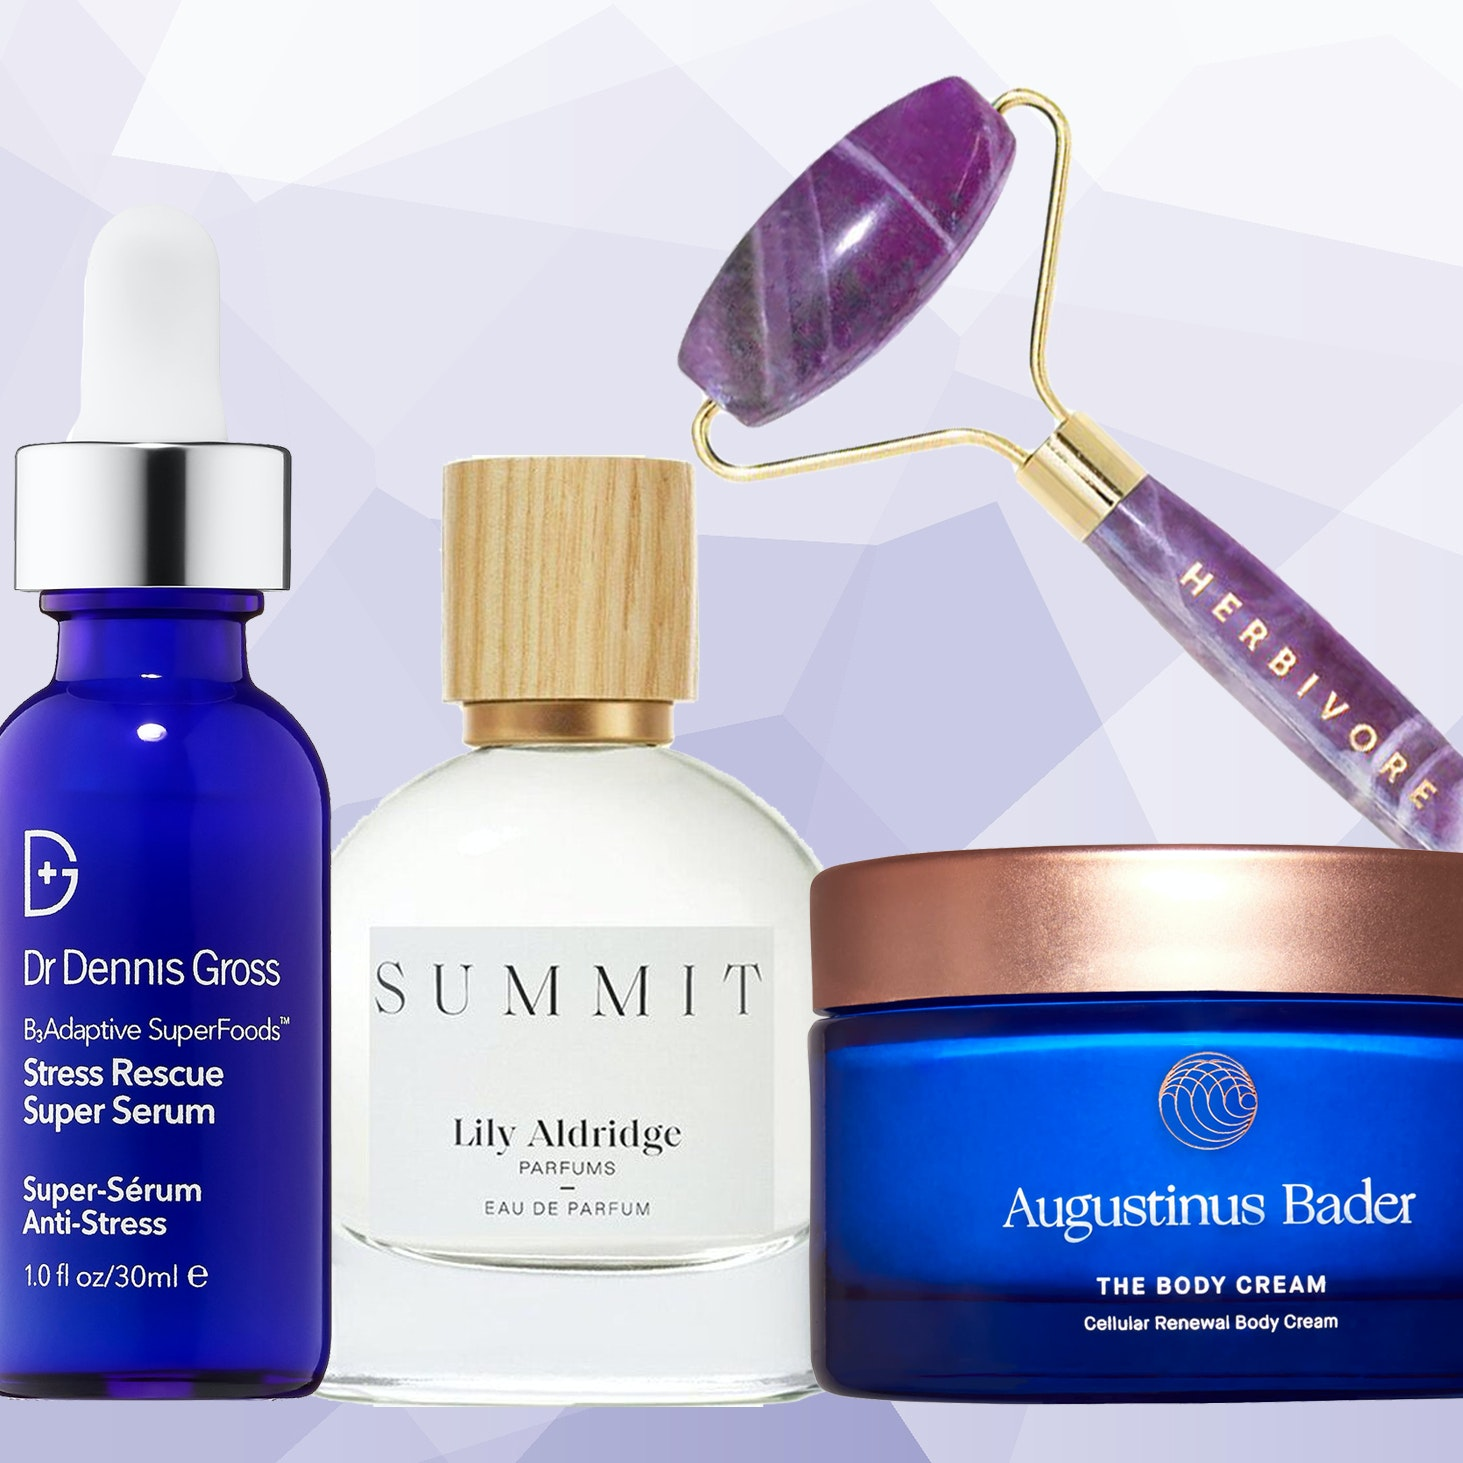 Start 2020 In Style With Our Editors' Favorite New Beauty Launches For January